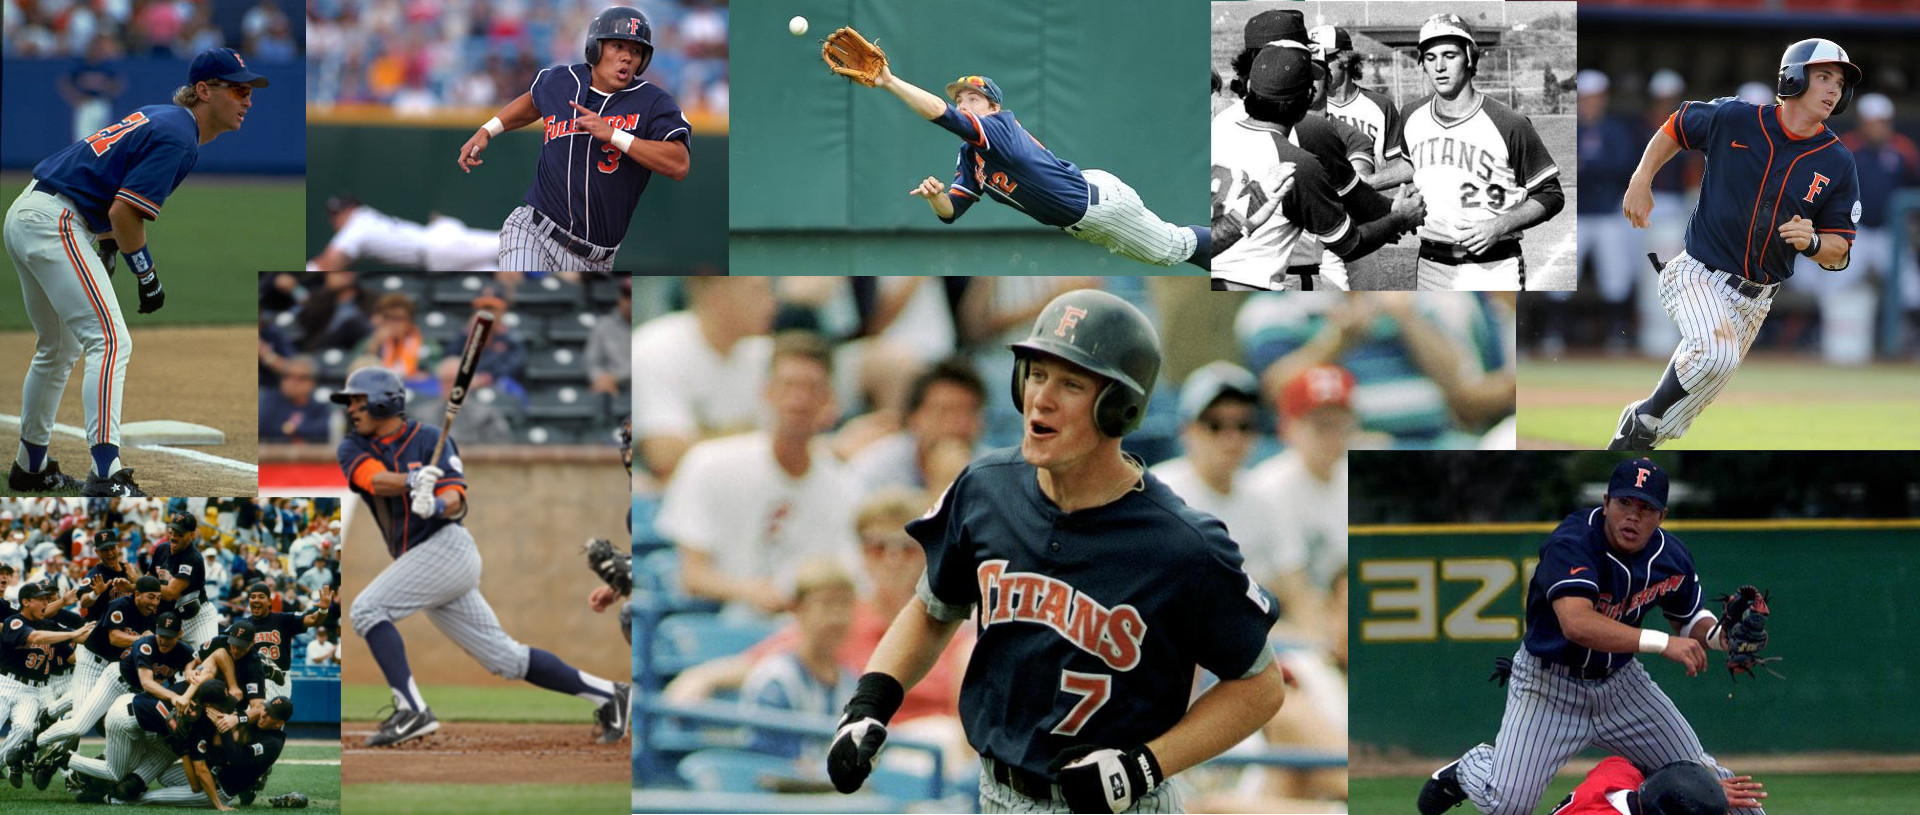 Cal State Fullerton Greatest Players all-time Batters